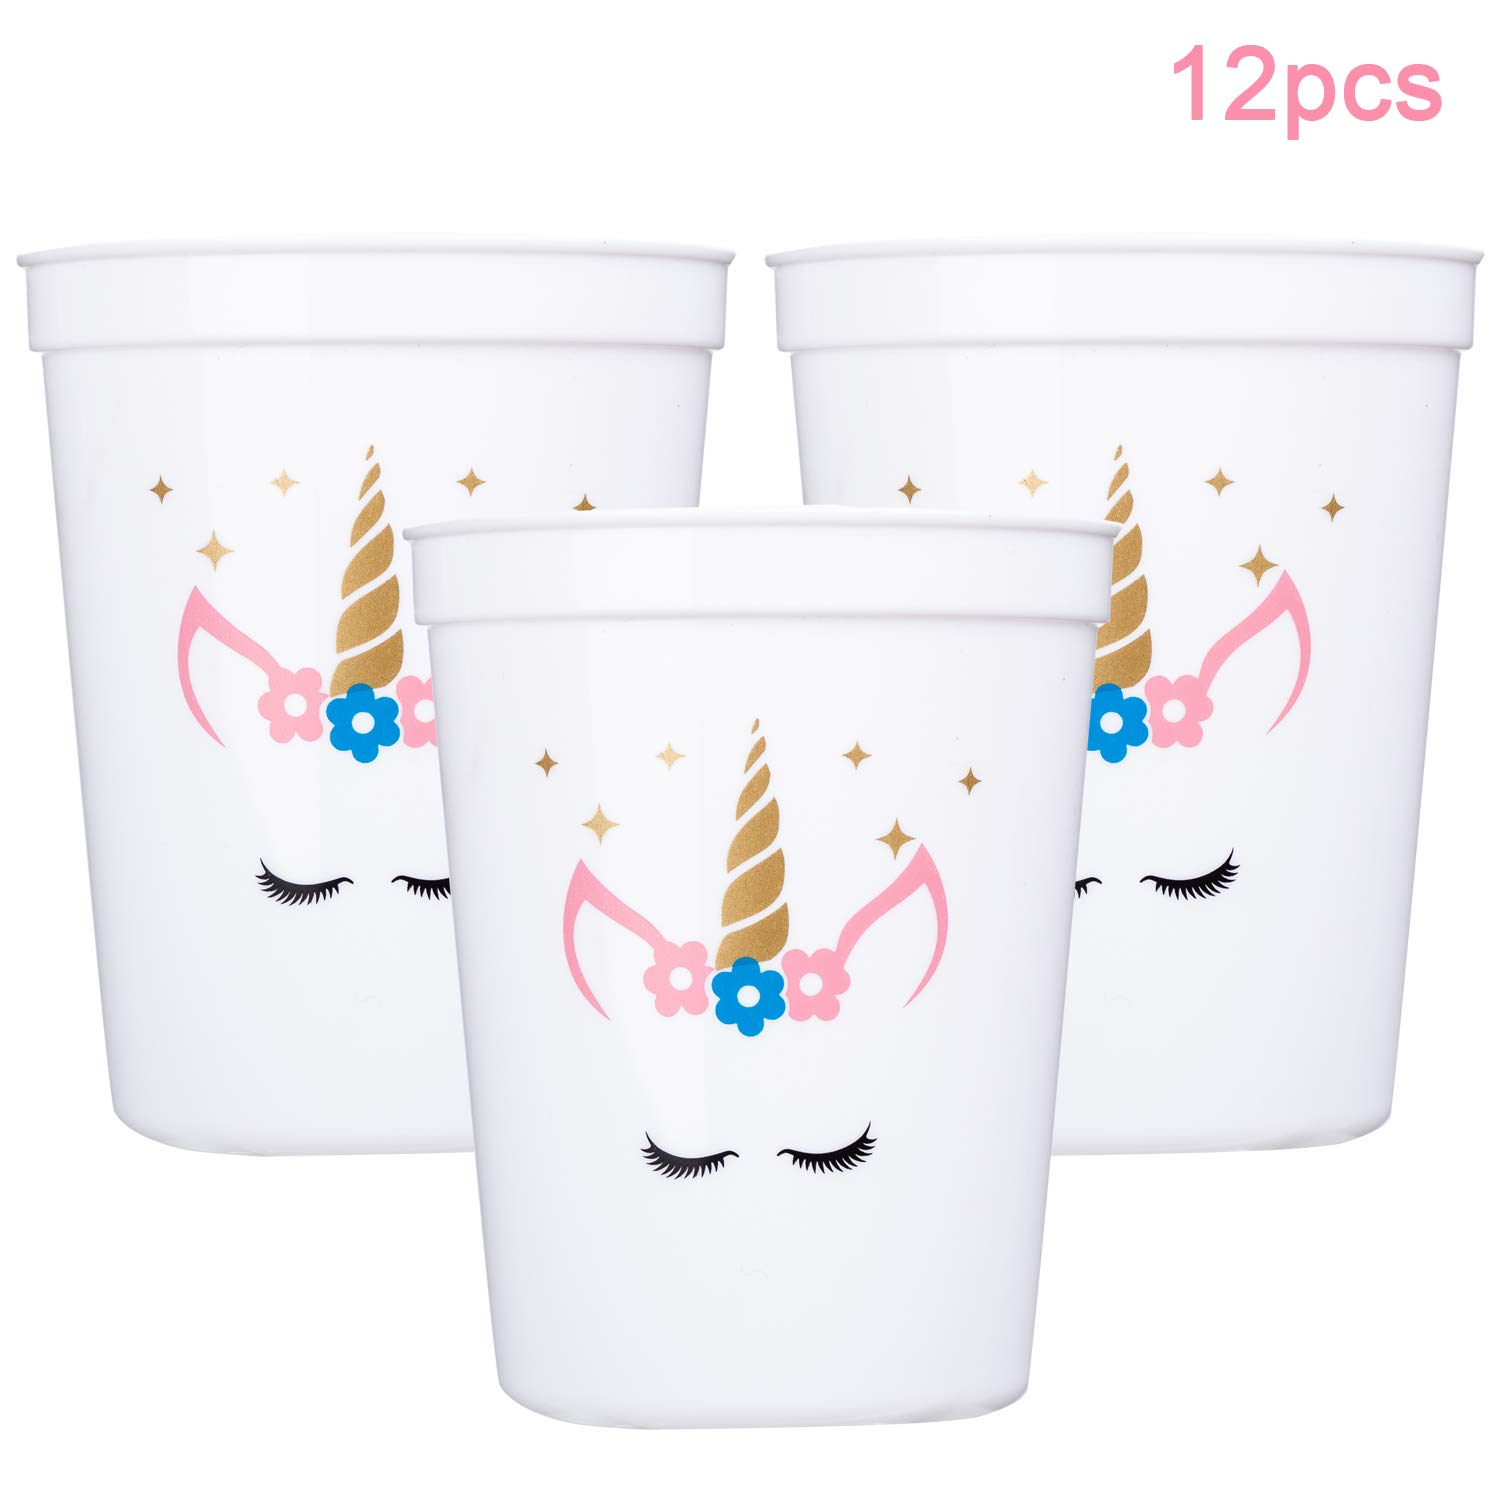 MISS FANTASY Unicorn Cups Unicorn Party Supplies Favors Magical Party Sparkle Keepsake Cups for Girls Plastic Cups 12 OZ Pack of 12 Packed with White Paper Box (White)